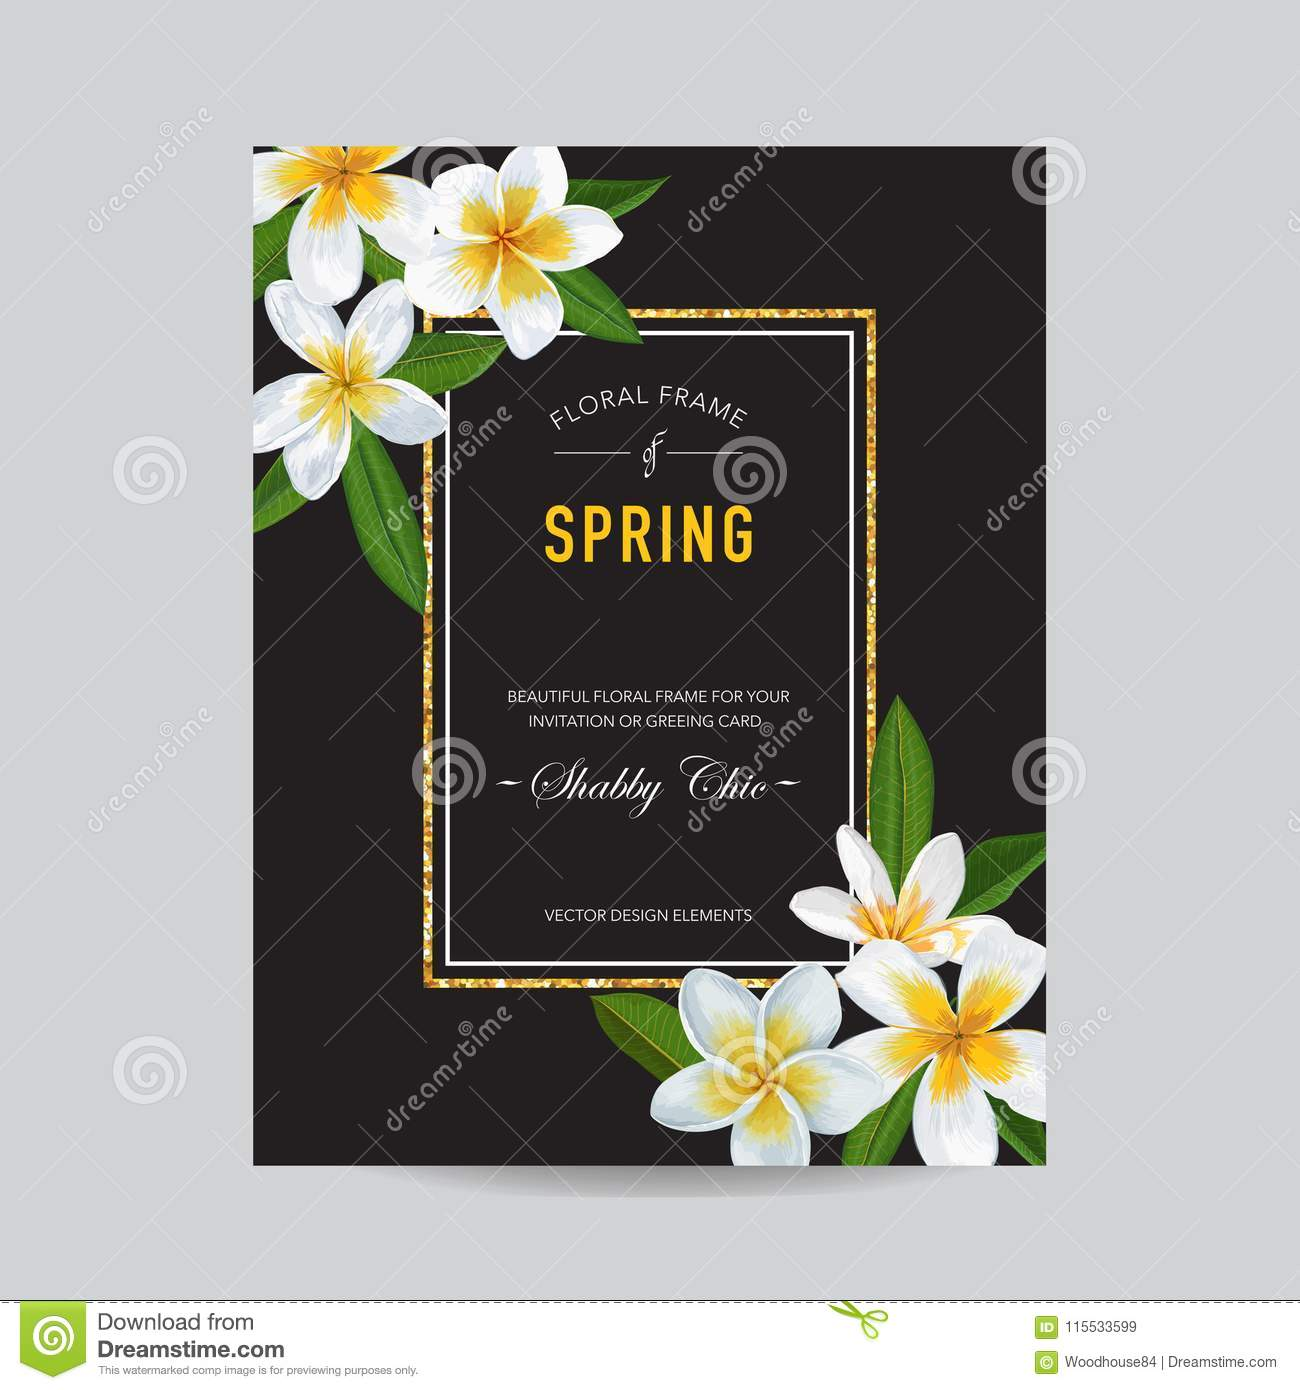 Wedding Invitation Template With Plumeria Flowers. Tropical Floral ...